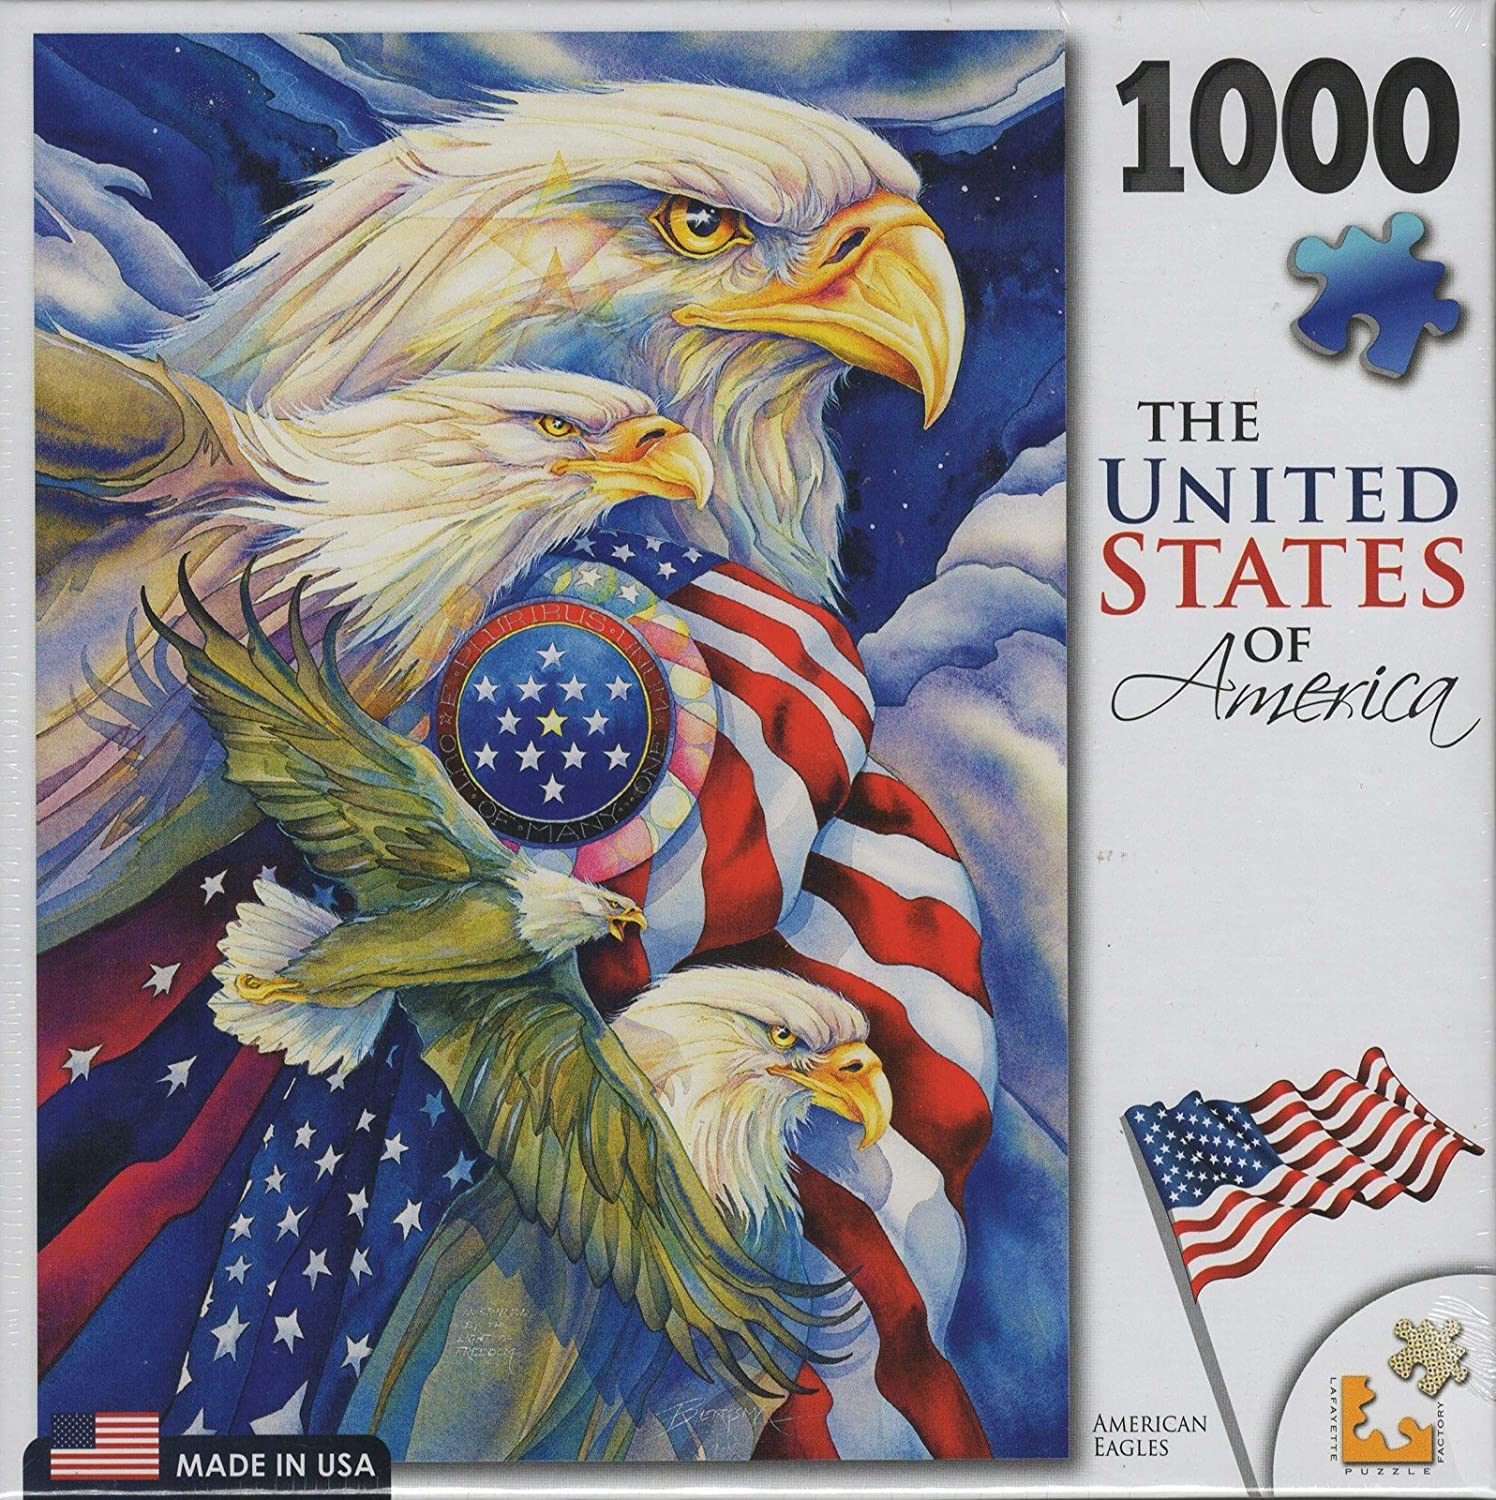 American Eagles Puzzle By Jody Bergsma Lafayette Puzzle Factory USA 1000